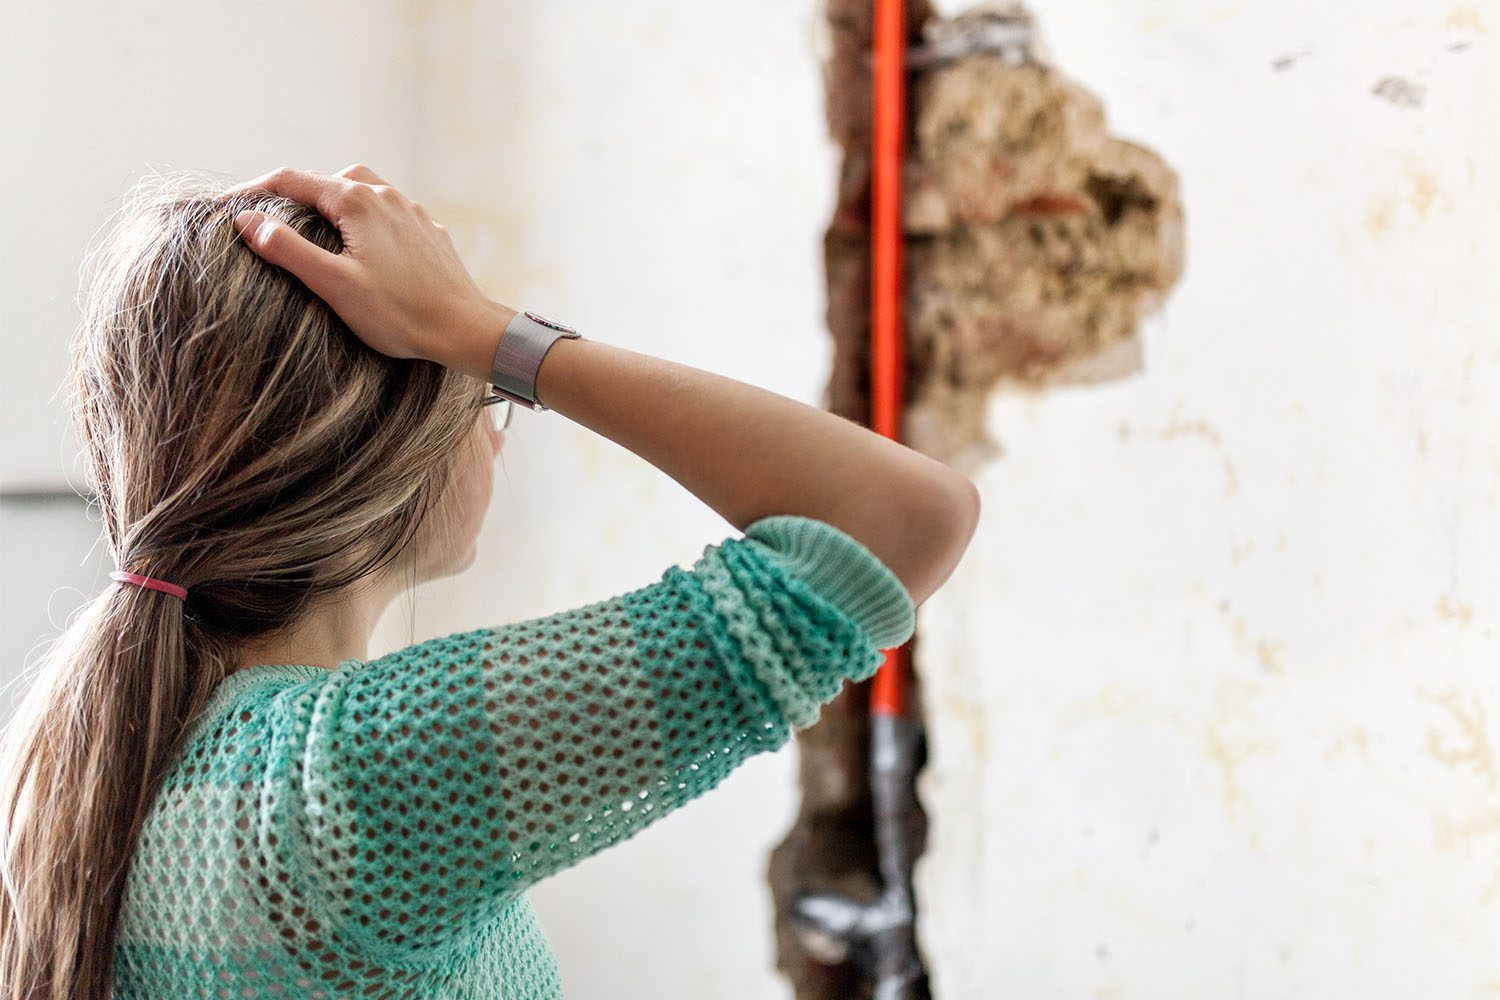 Woman concerned and looking at mold from water damage